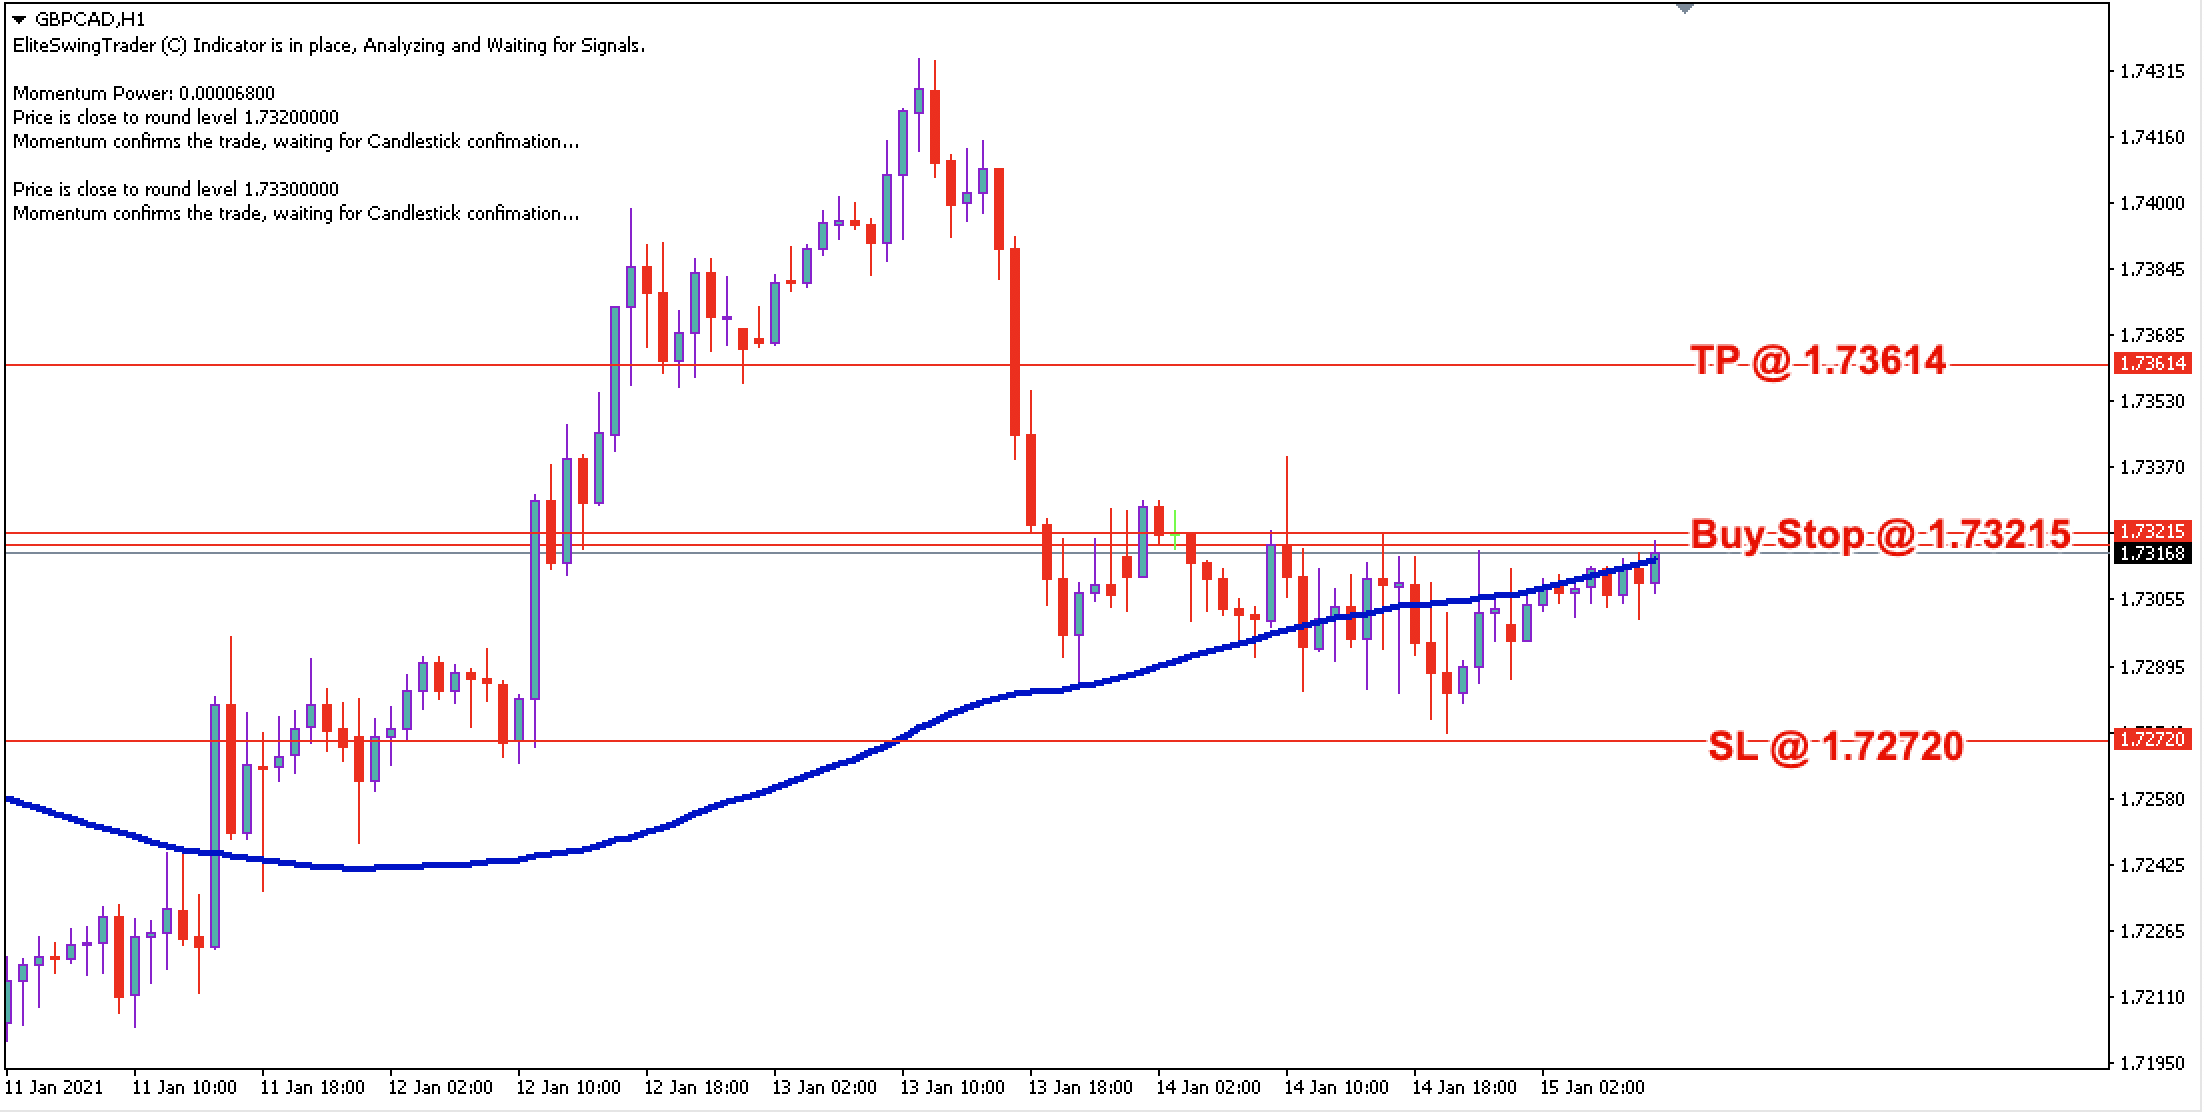 GBP/CAD Daily Price Forecast - 15th Jan 2021